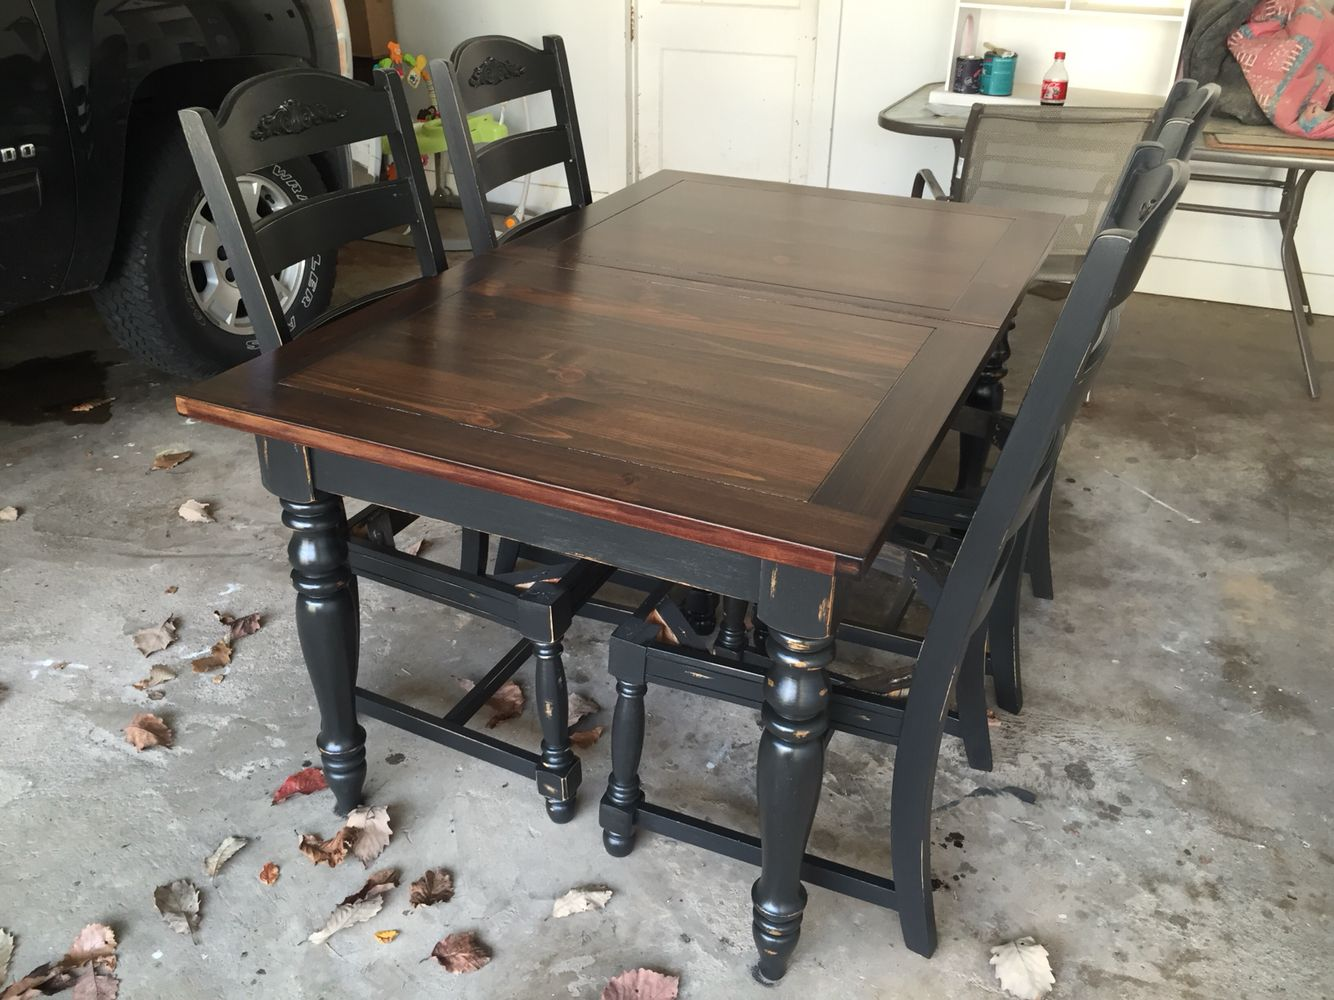 Refinished Oak Table, Base And Chairs Chalk Painted Black Velvet And Sealed  With Polycrylic Coats), Top Stained In Dark Walnut Part 51